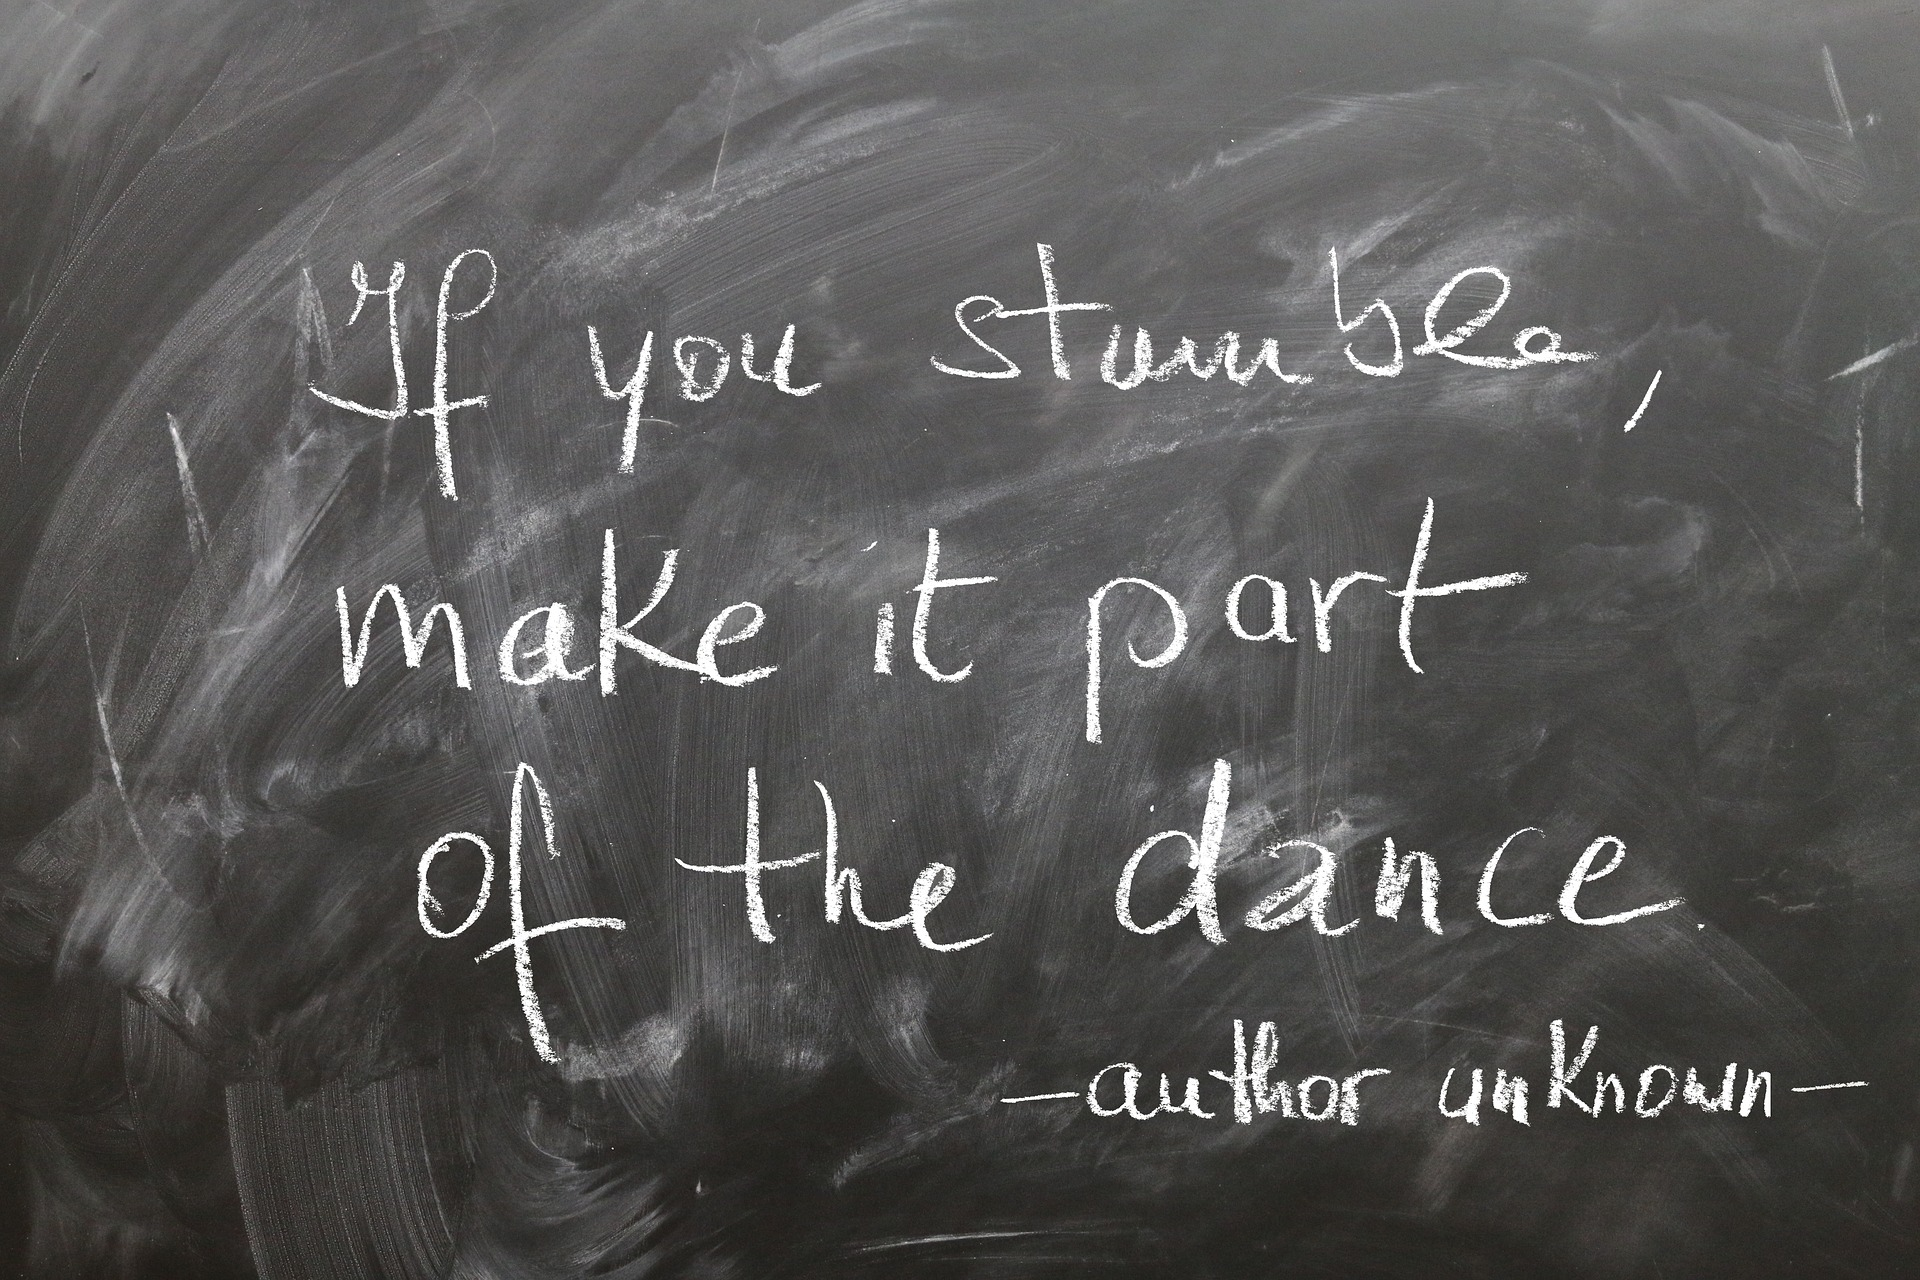 writing on chalkboard: If you stumble, make it part of the dance, author unkown